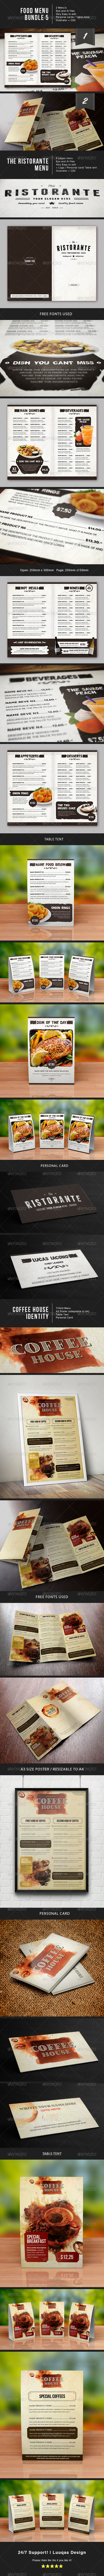 GraphicRiver Food Menu Bundle 5 7253864